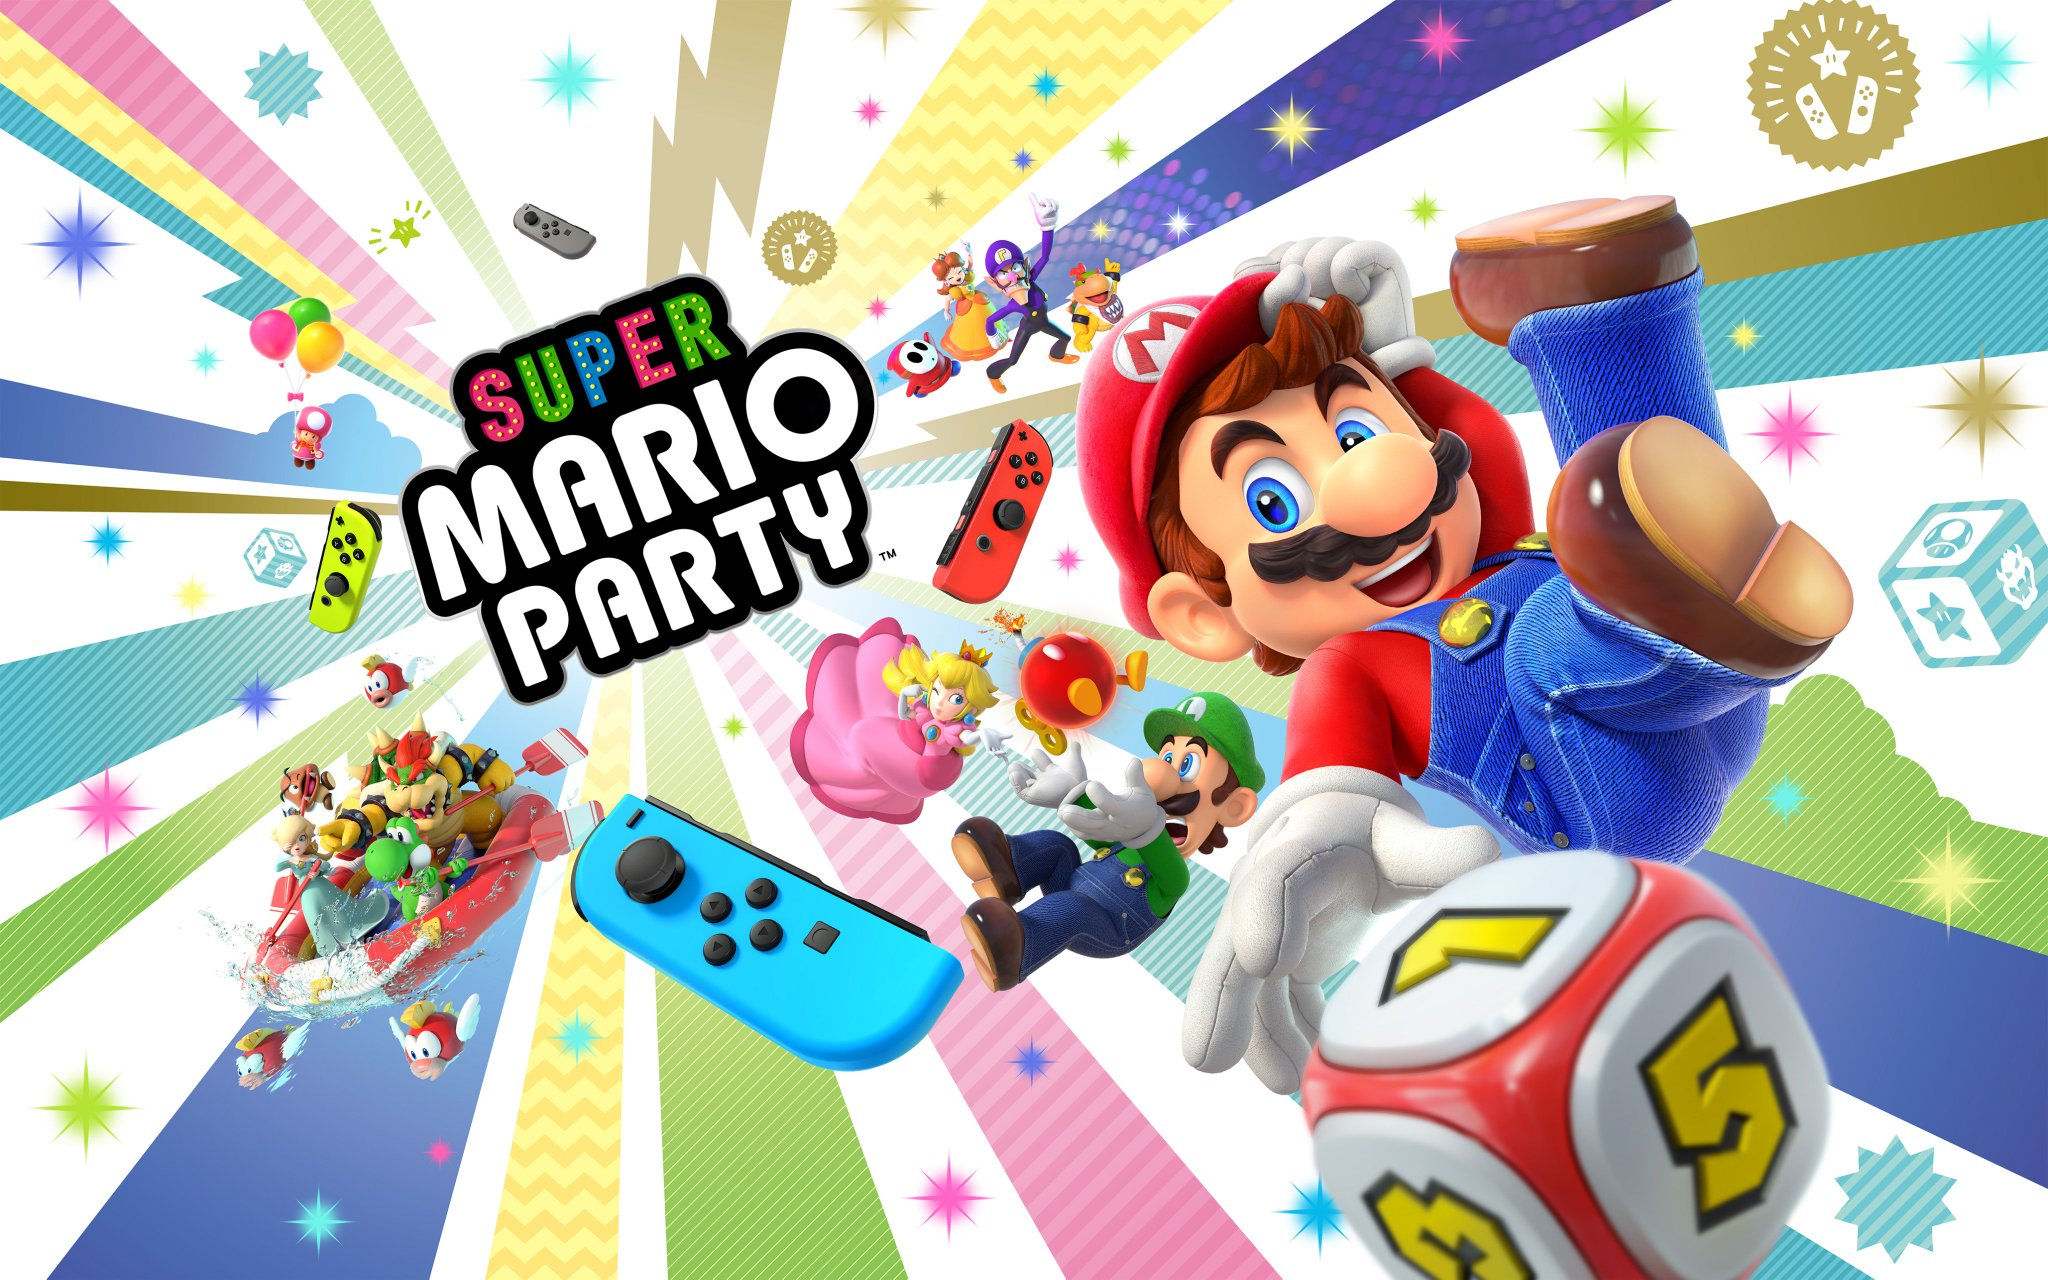 Get the party started when Super #MarioParty comes to #NintendoSwitch on 10/5! https://t.co/bXYB1aredQ